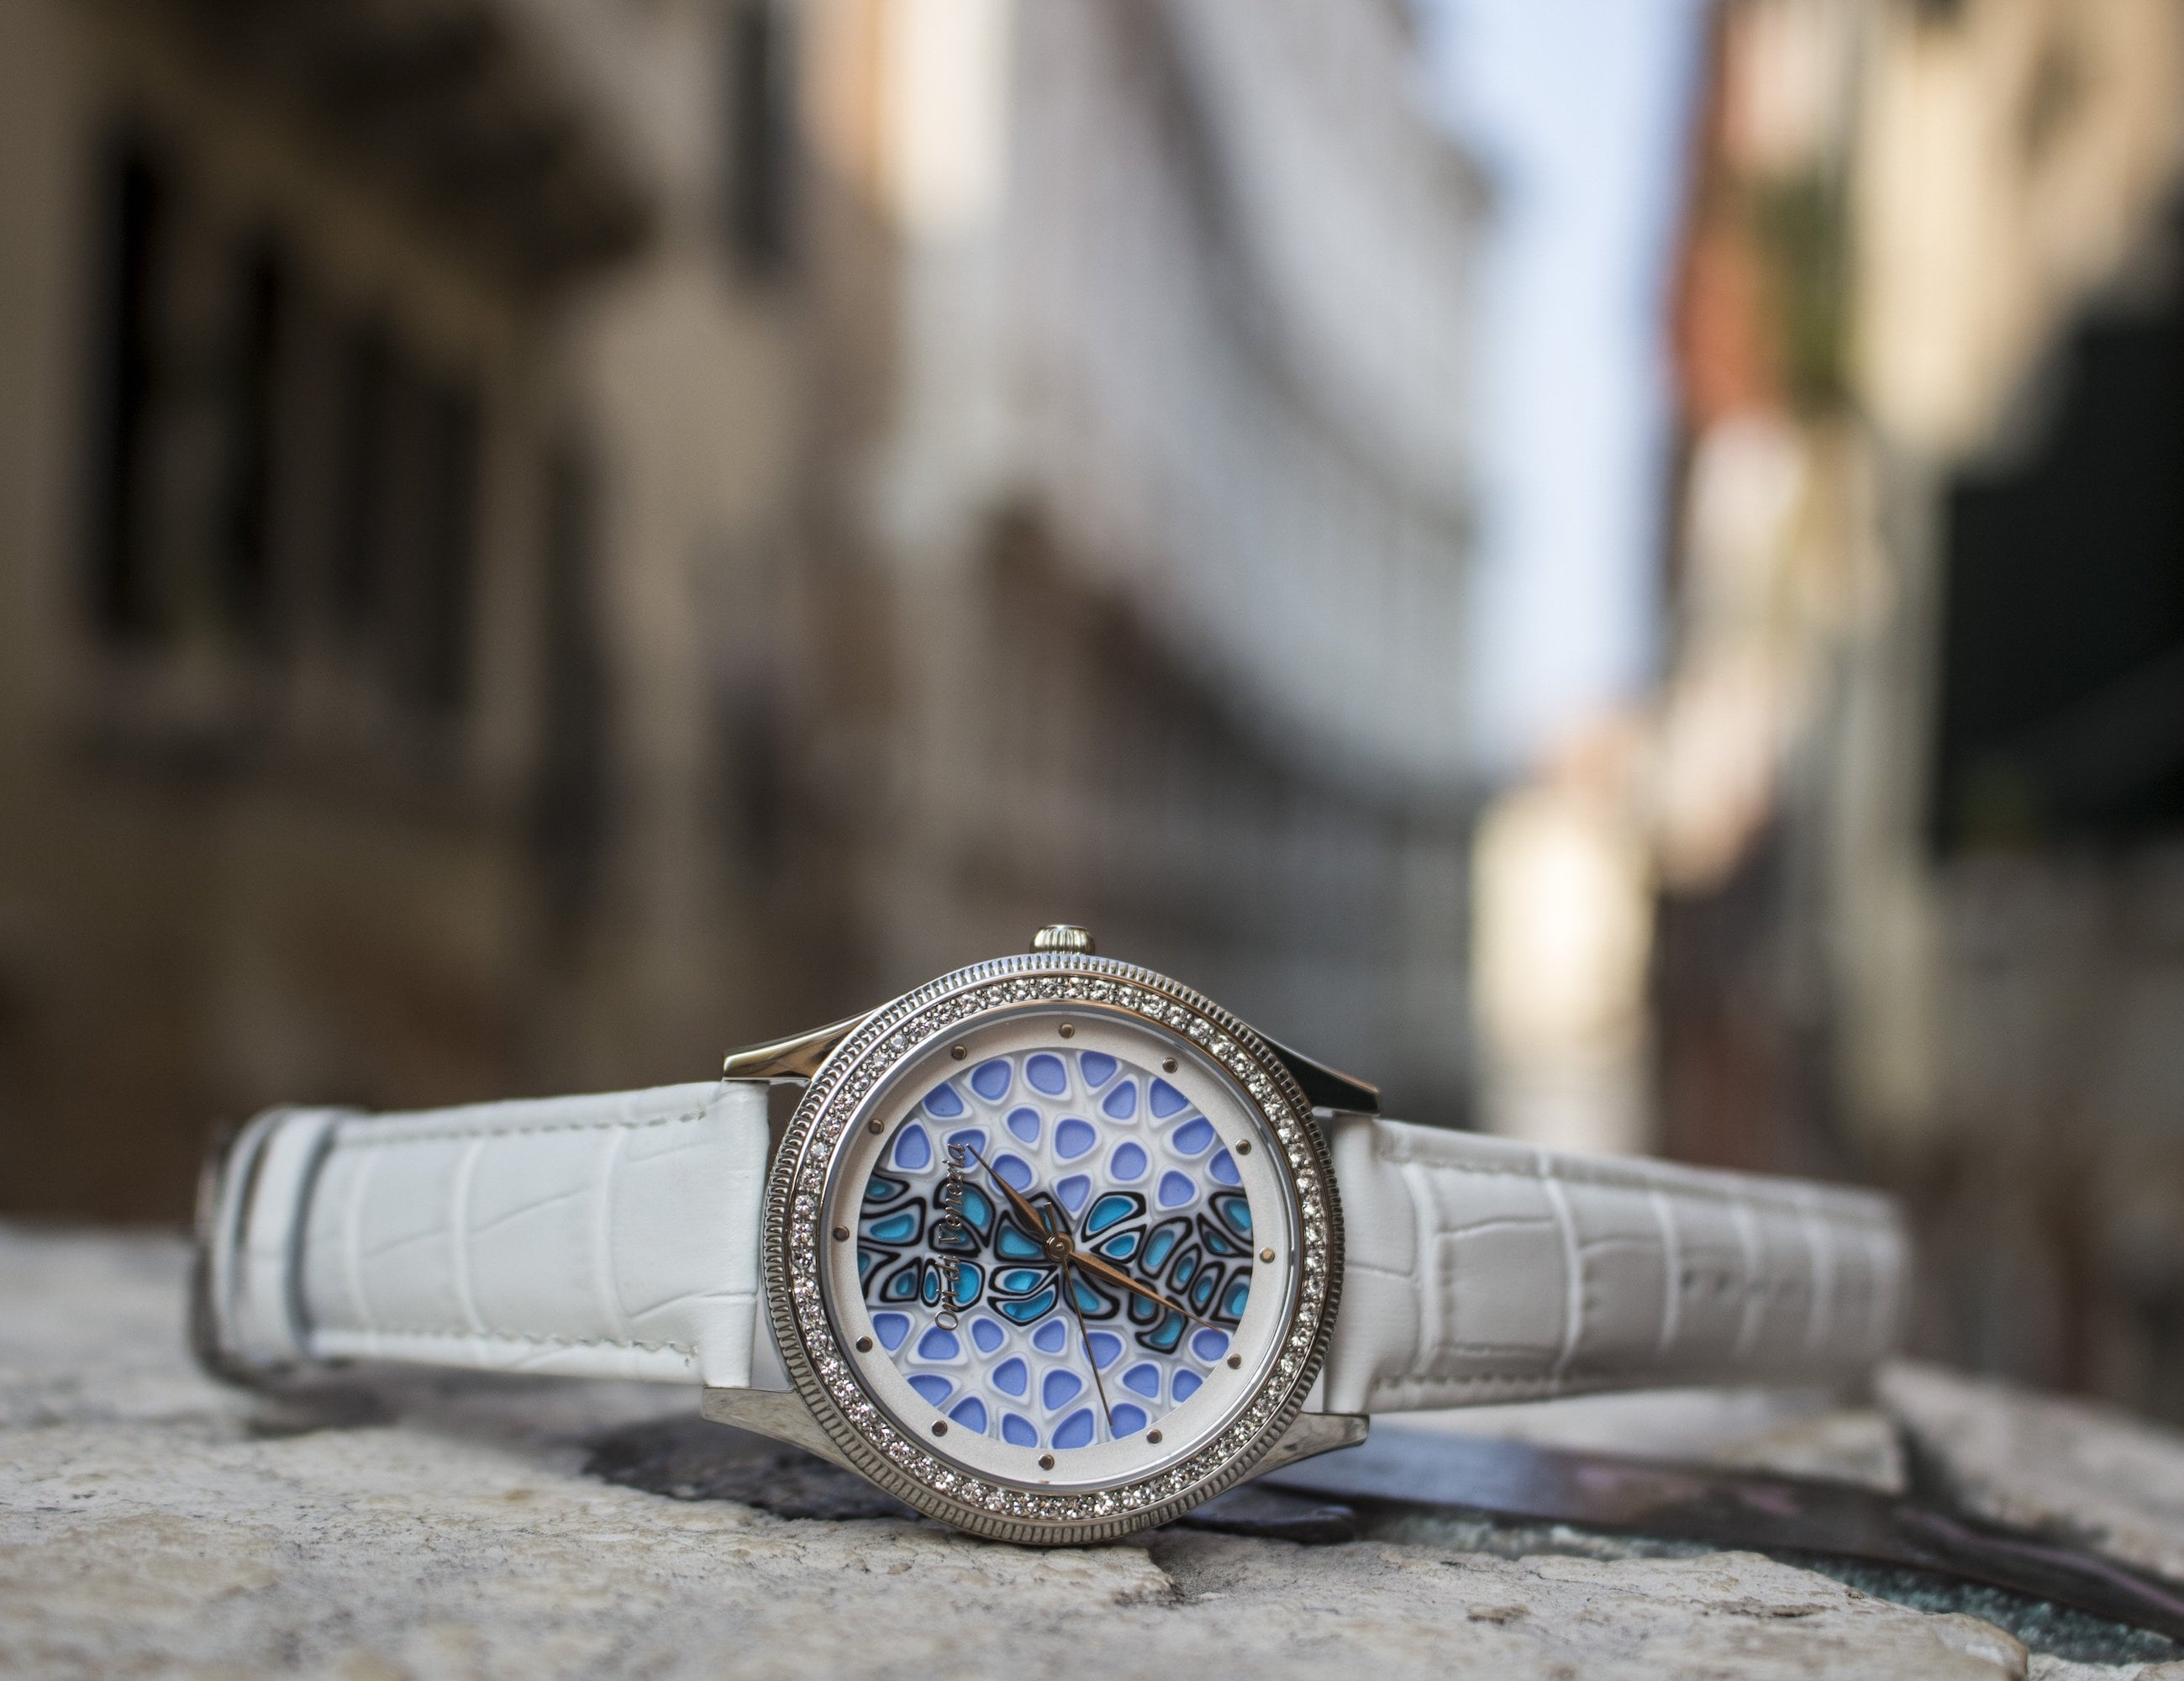 Rialto Collection Handmade Murano Glass Watches